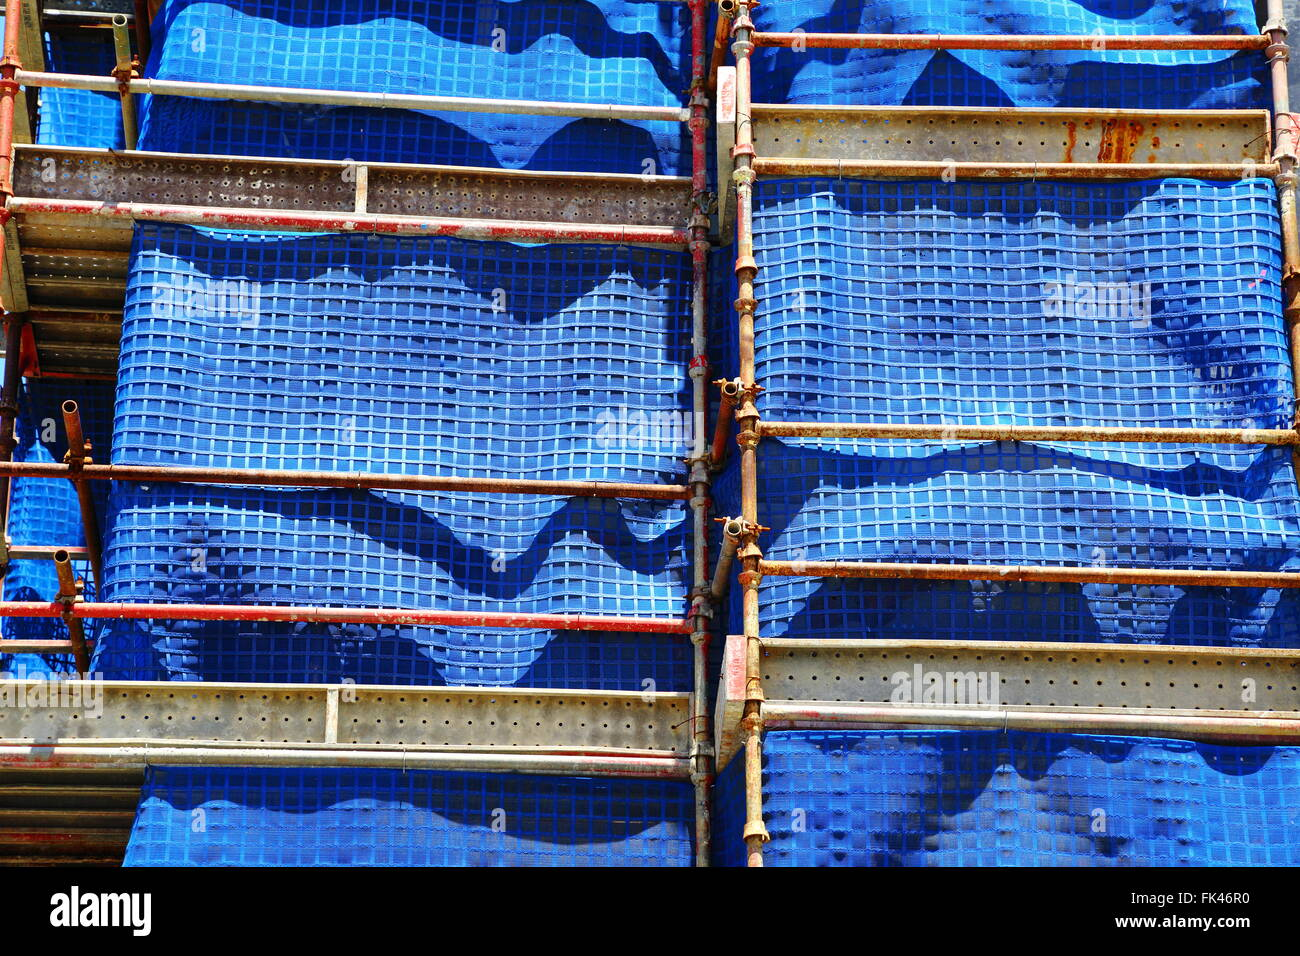 Building construction scaffolding with blue fabric. - Stock Image